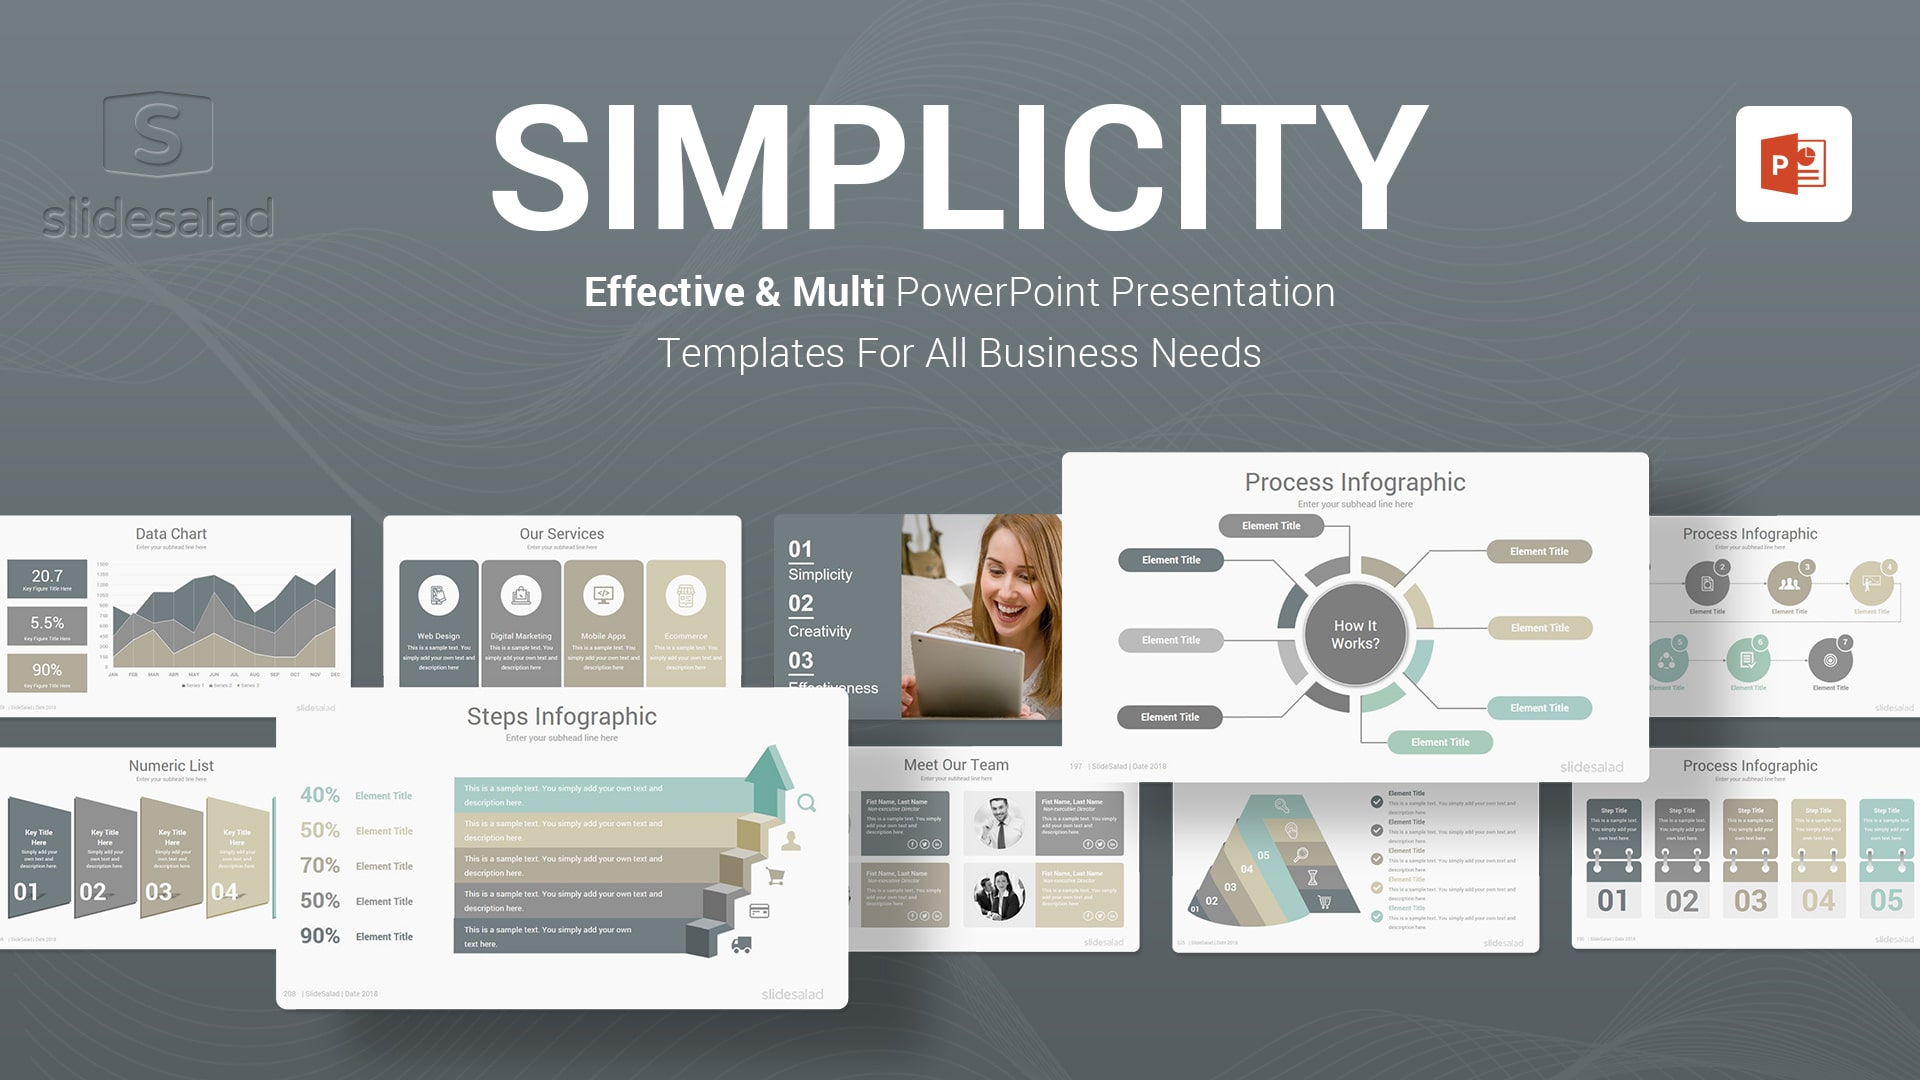 Simplicity Professional Business PowerPoint Templates - Fully Animated Customizable PowerPoint Template